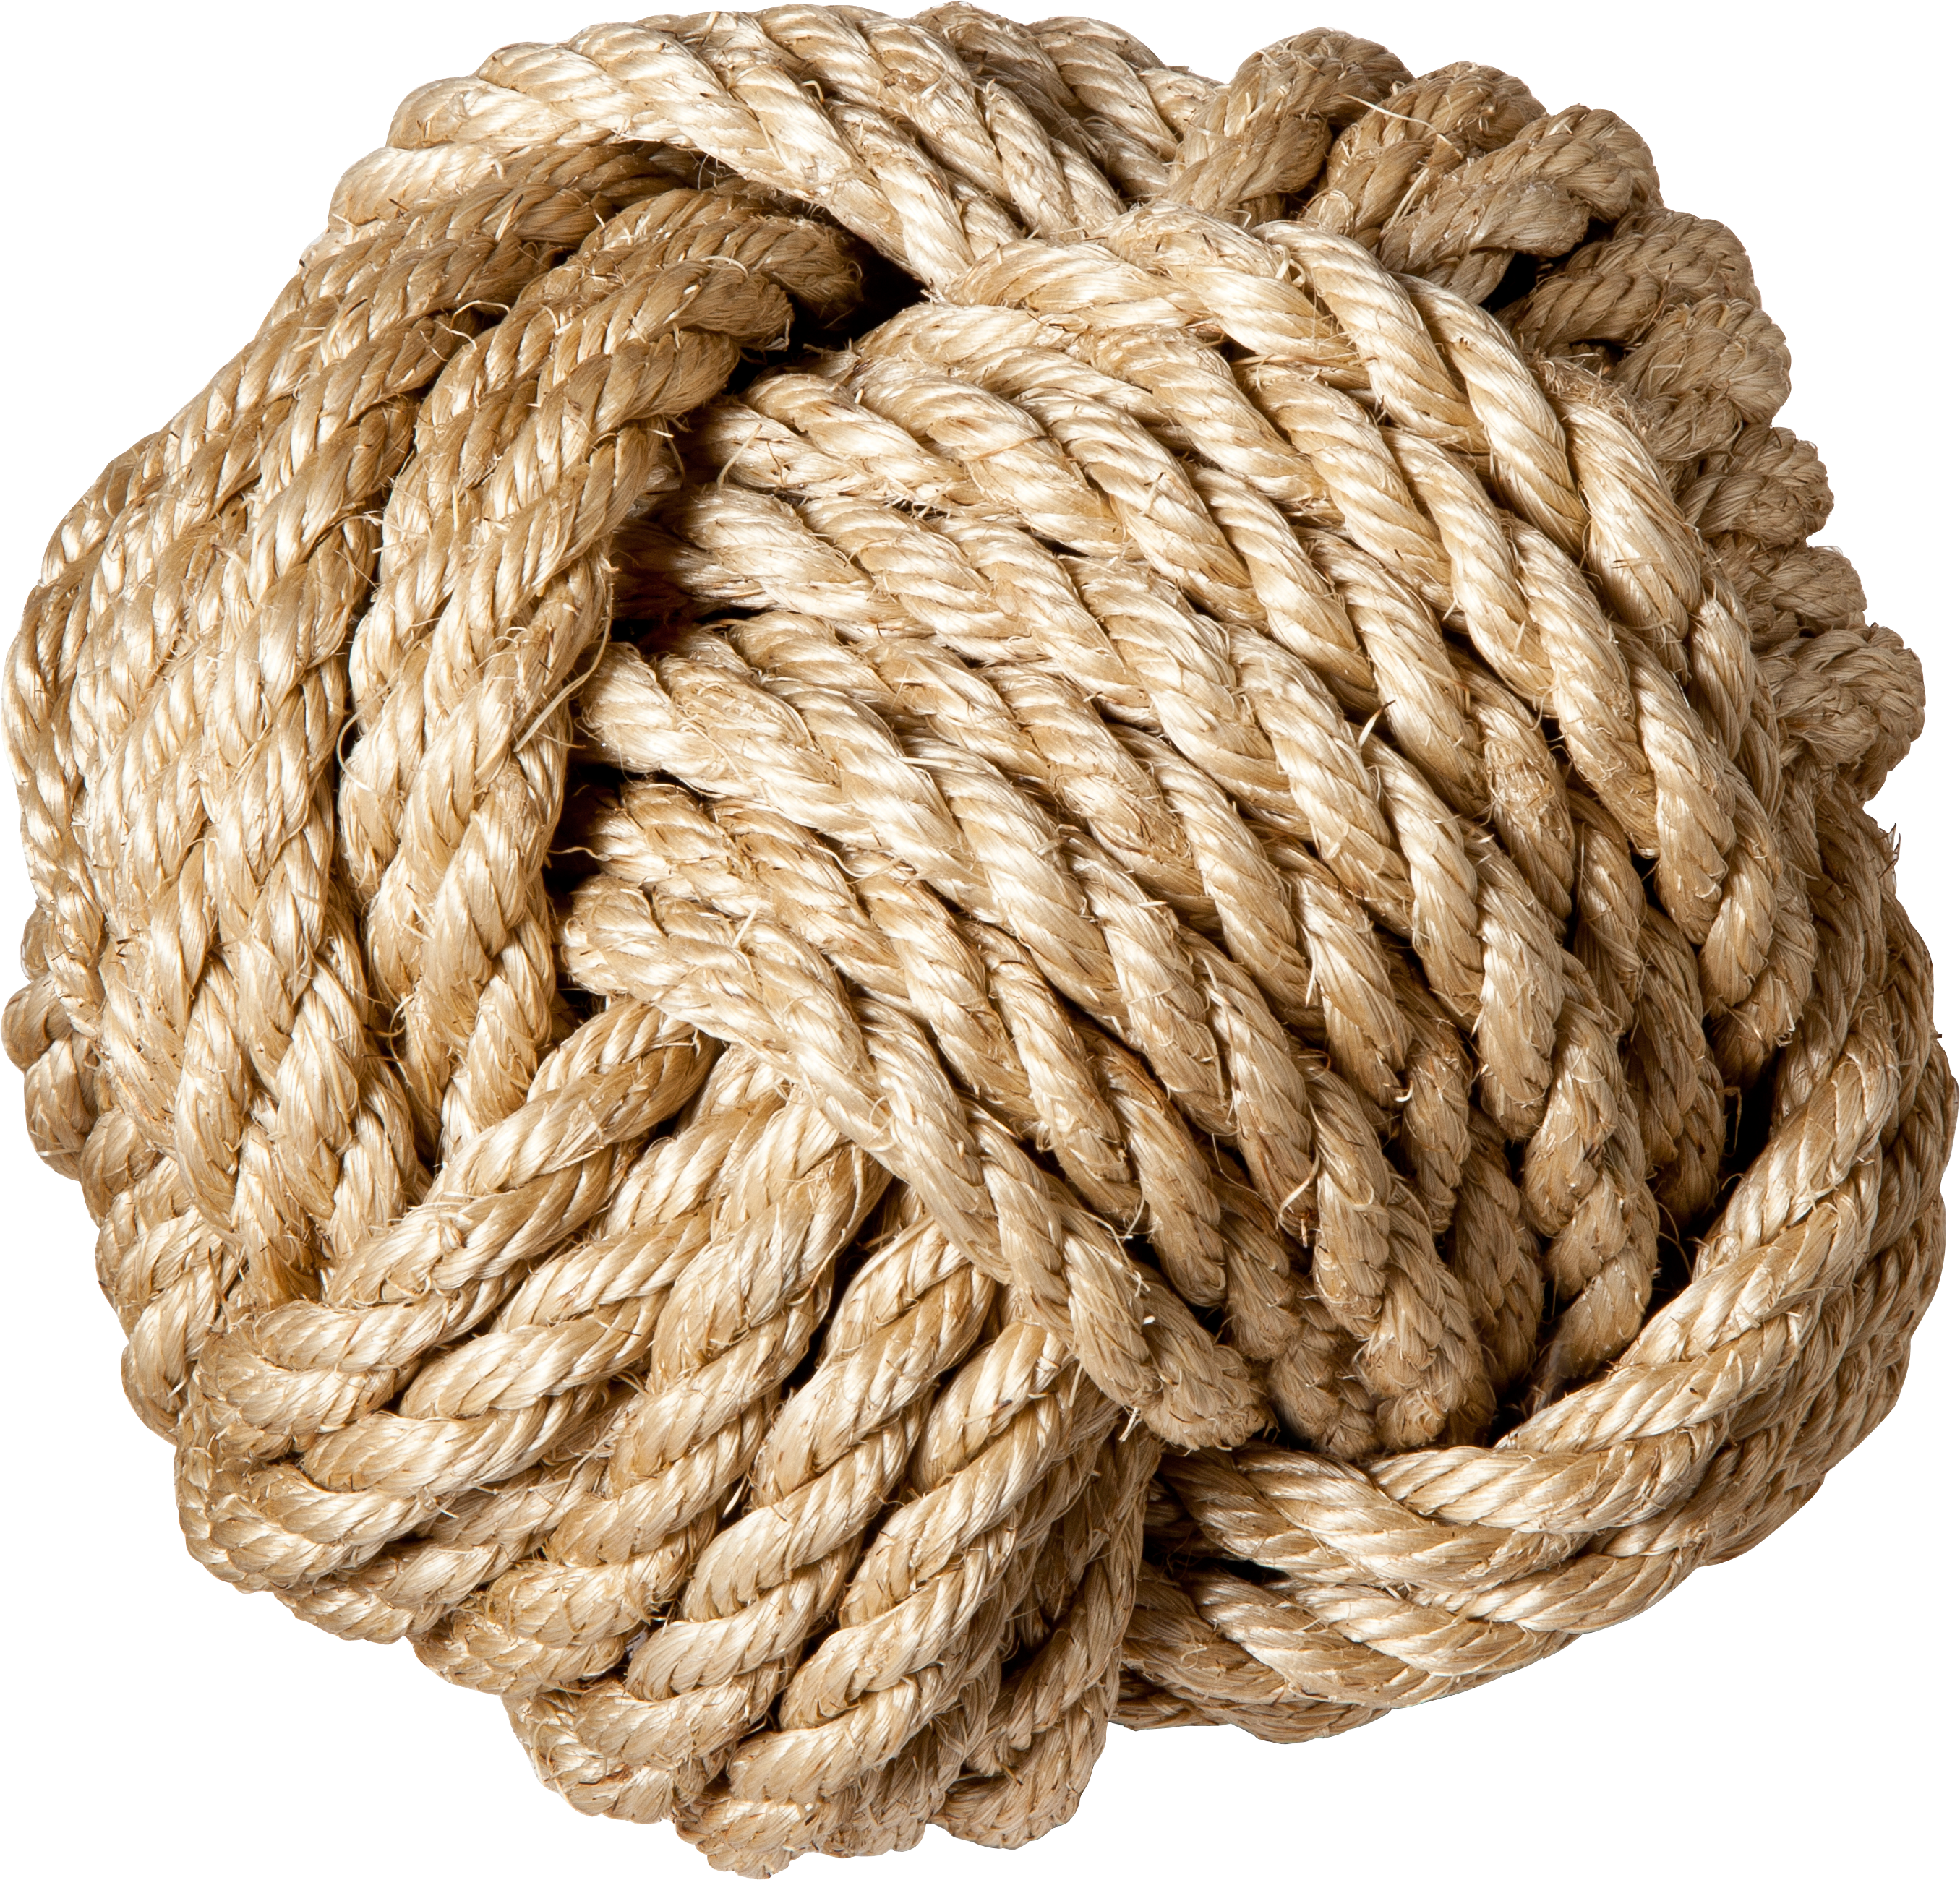 Rope PNG HD - 131982